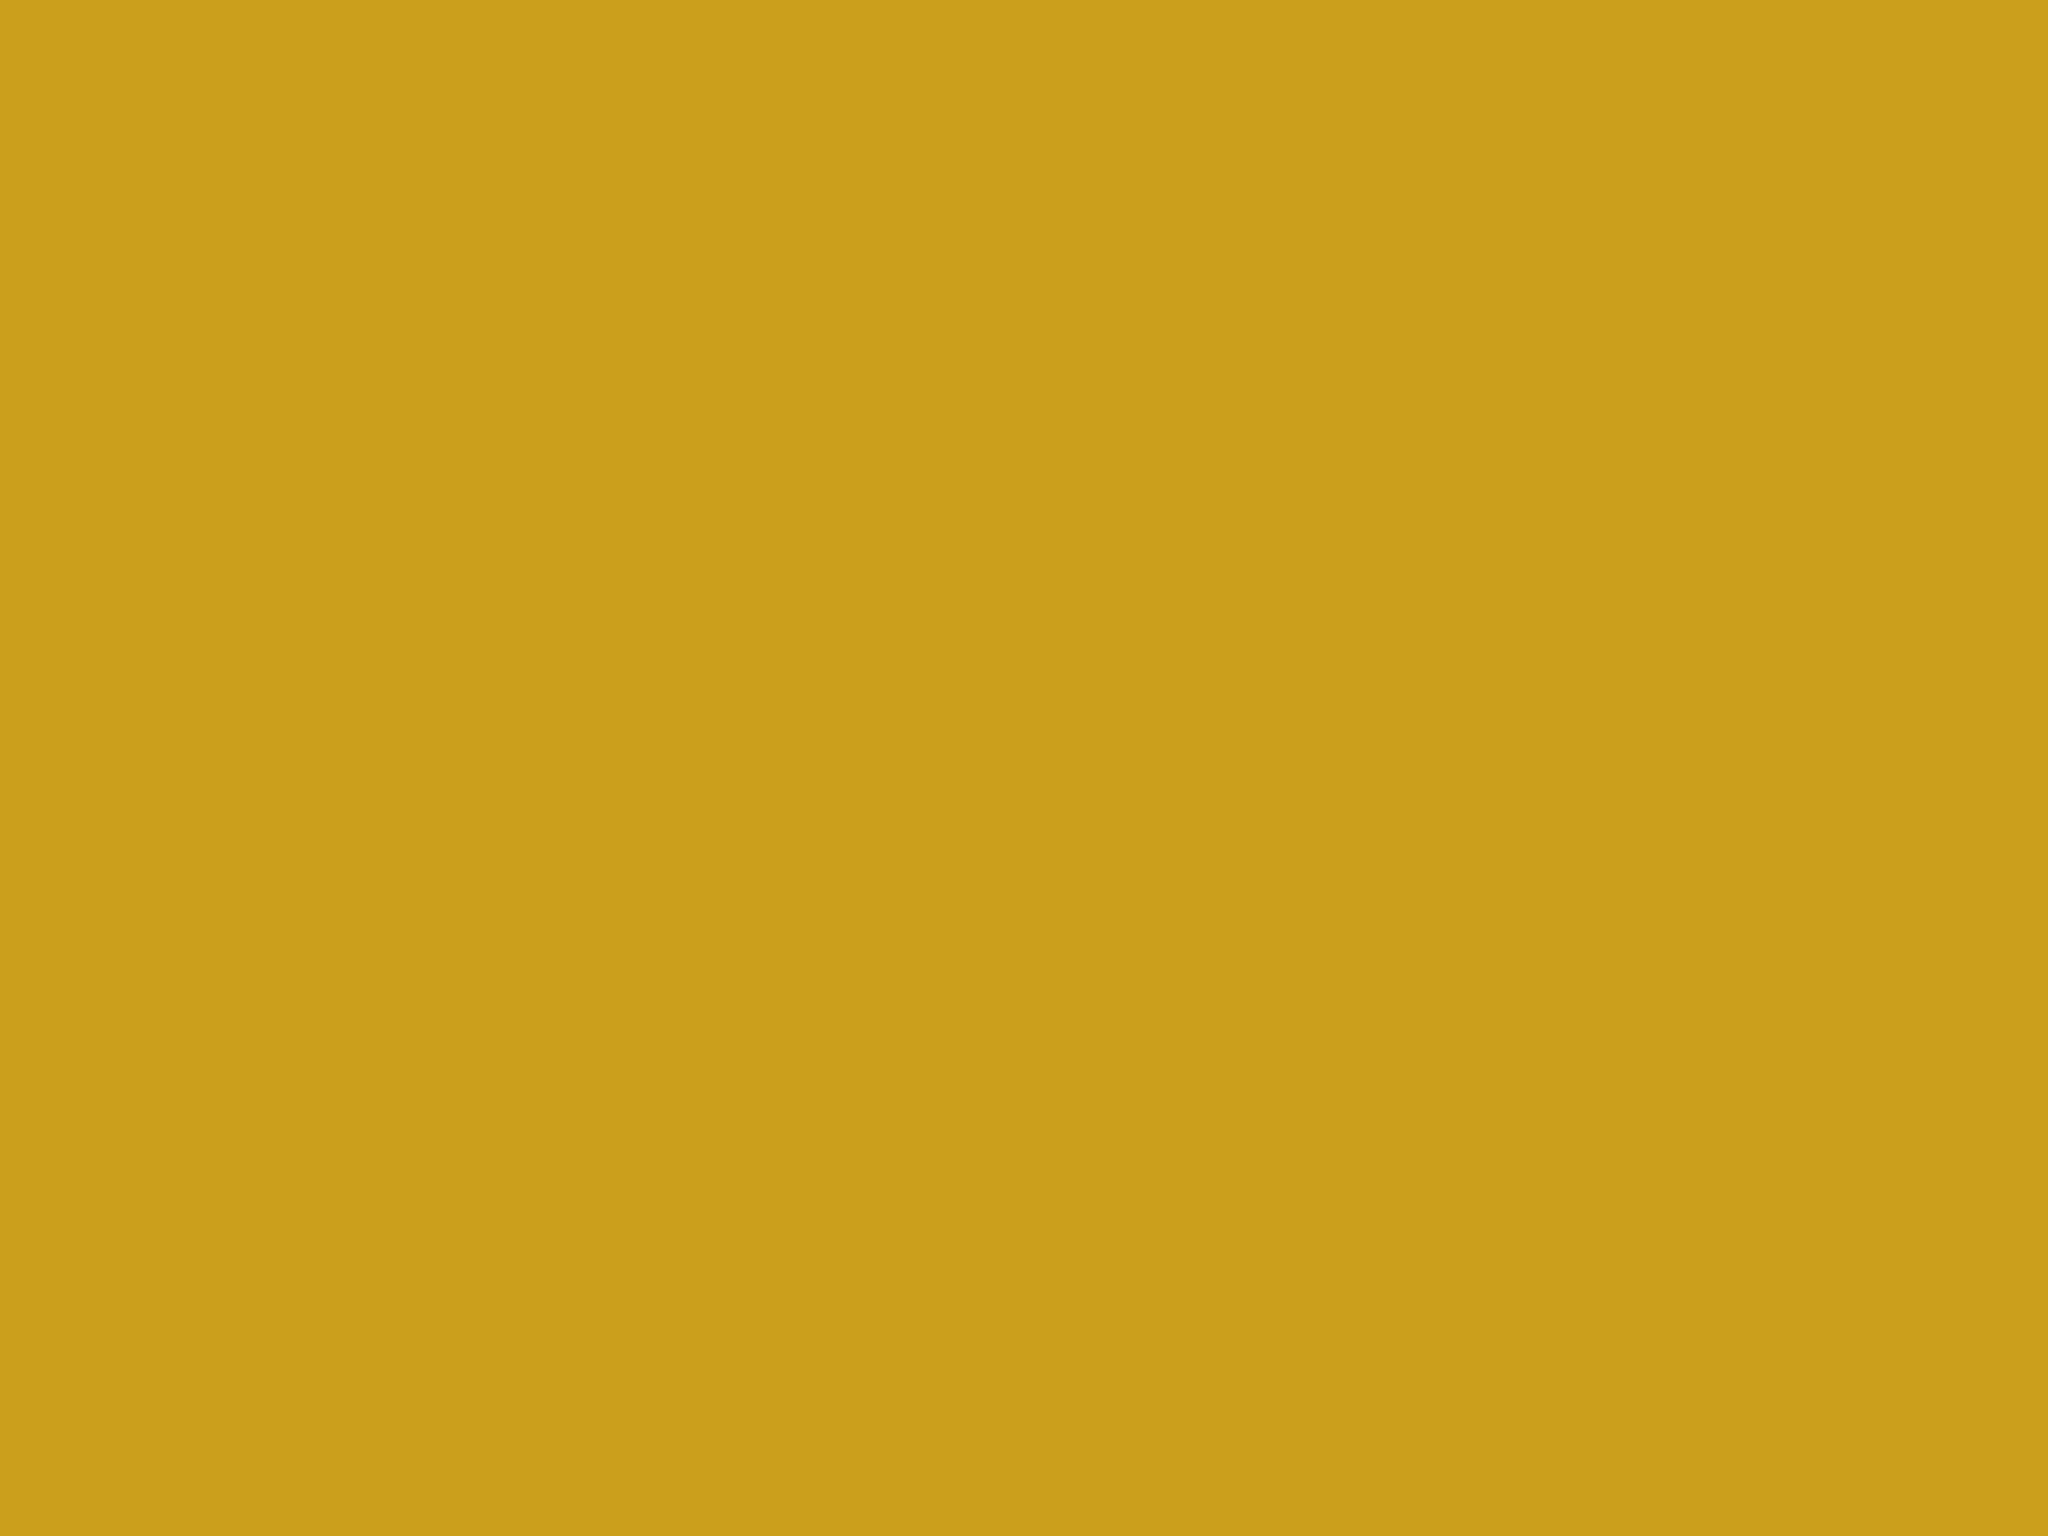 2048x1536 Lemon Curry Solid Color Background